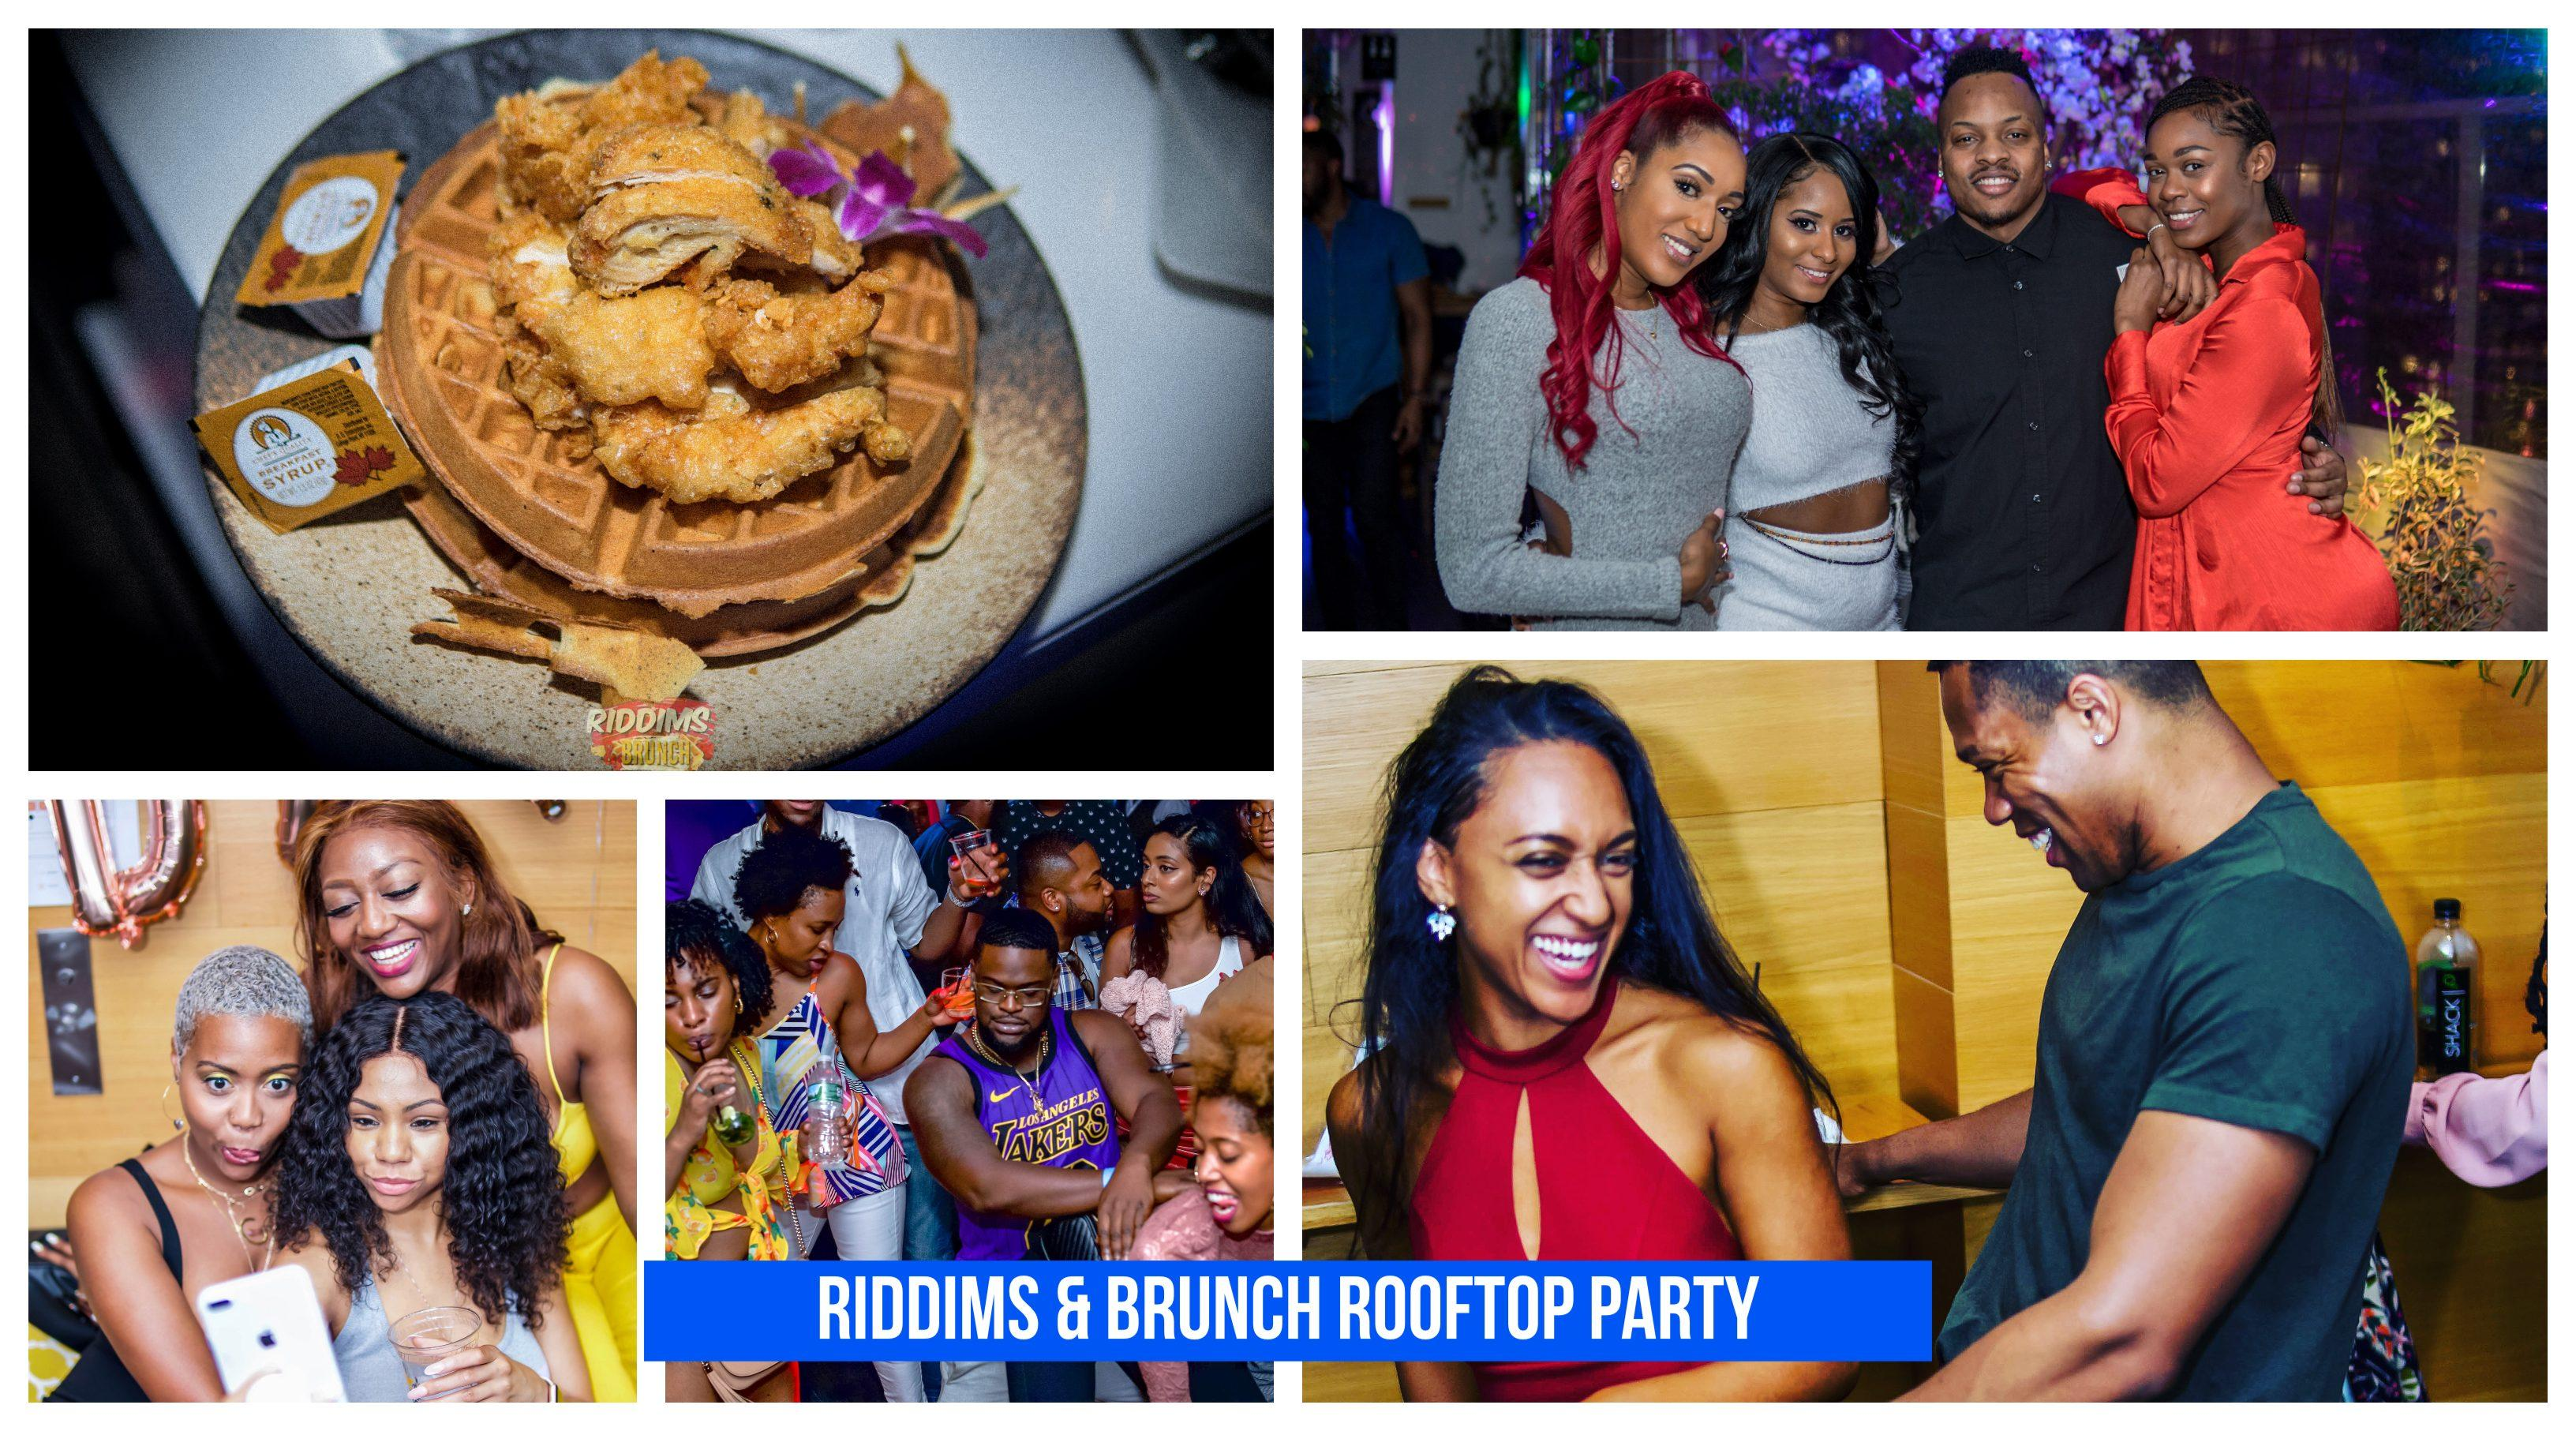 Riddims & Brunch Rooftop Party